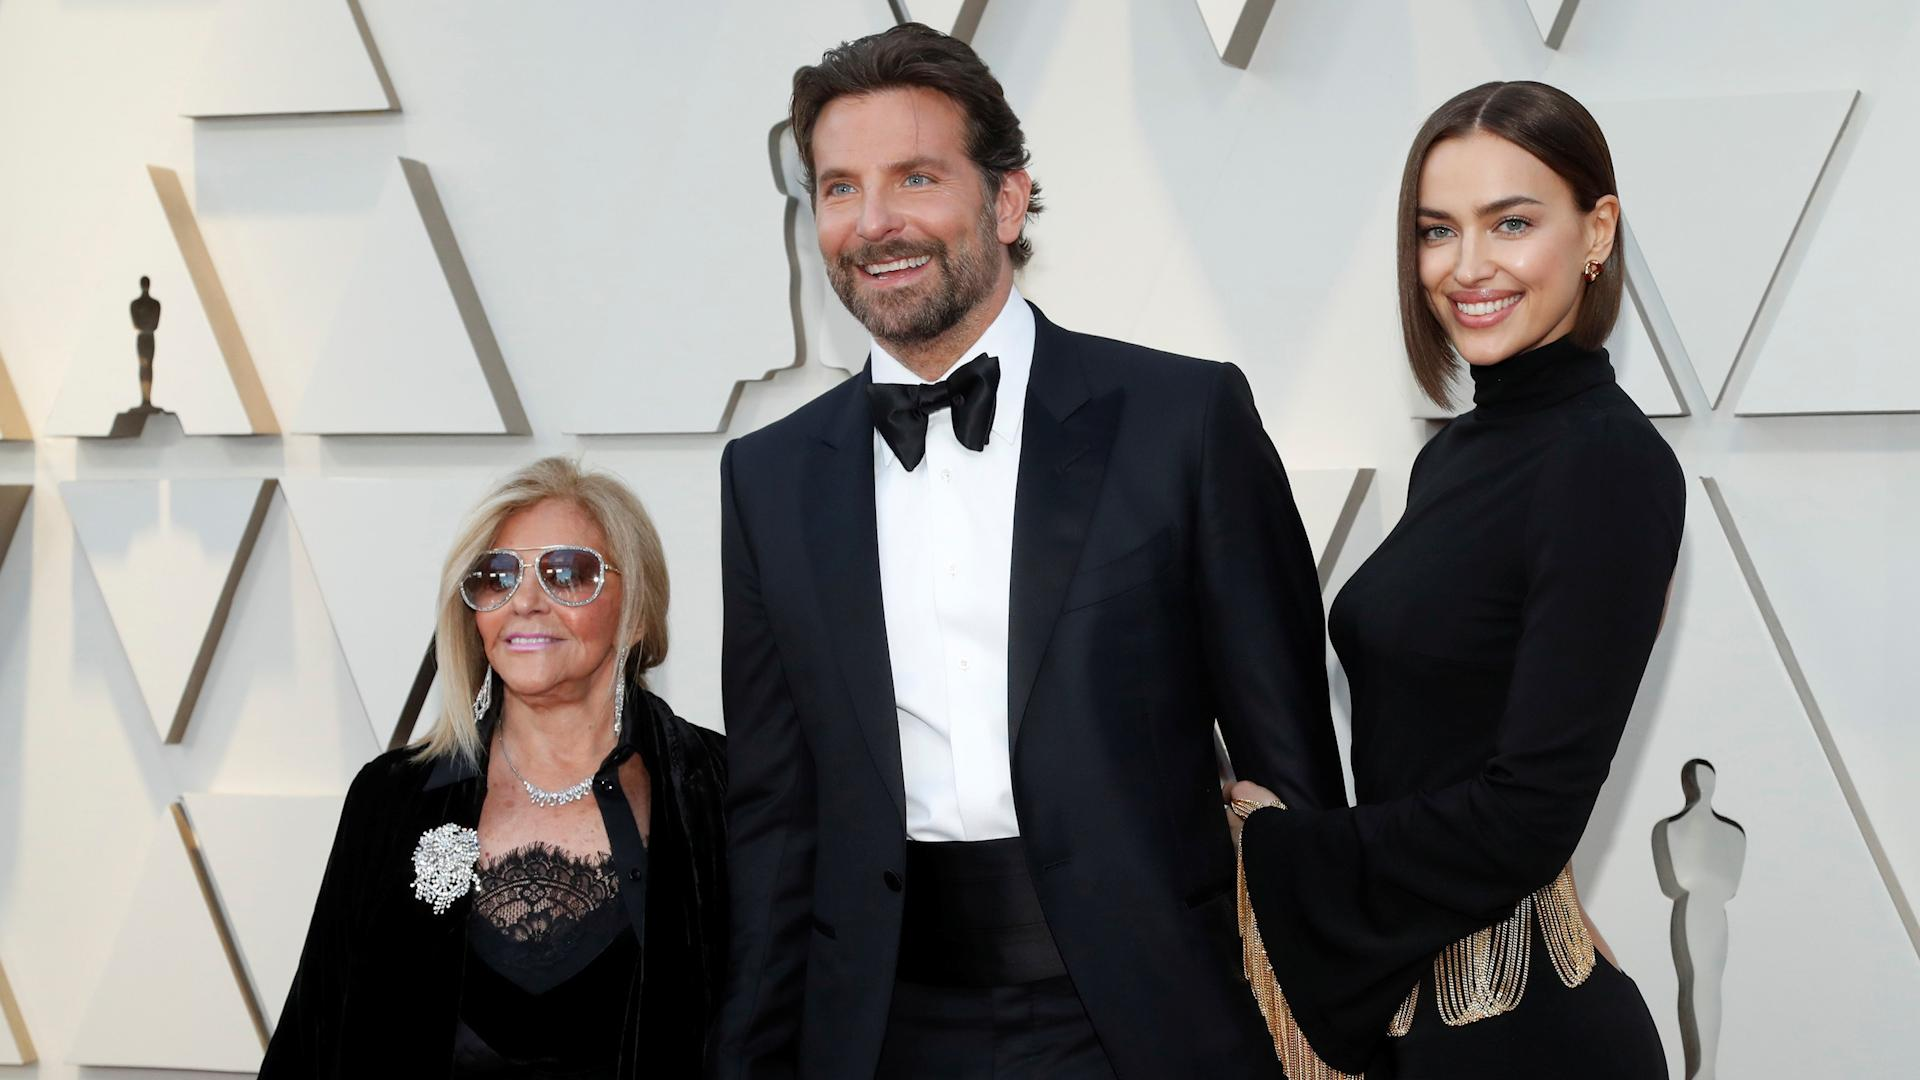 Oscars 2019: Bradley Cooper walks red carpet with his mother Gloria